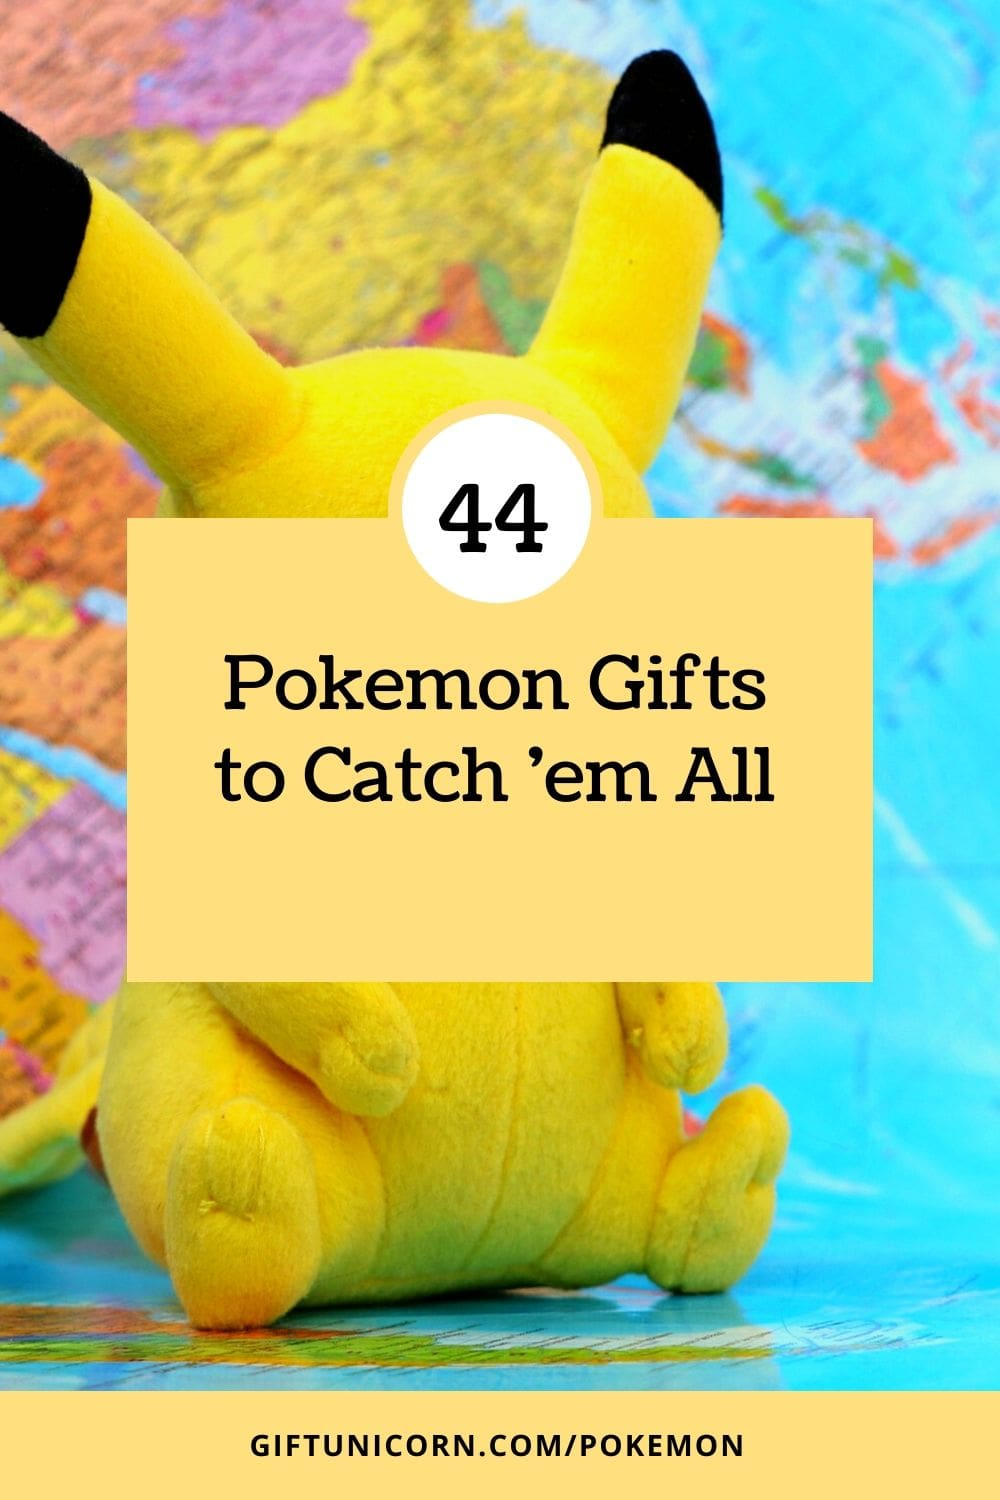 44 Pokemon gifts pin image